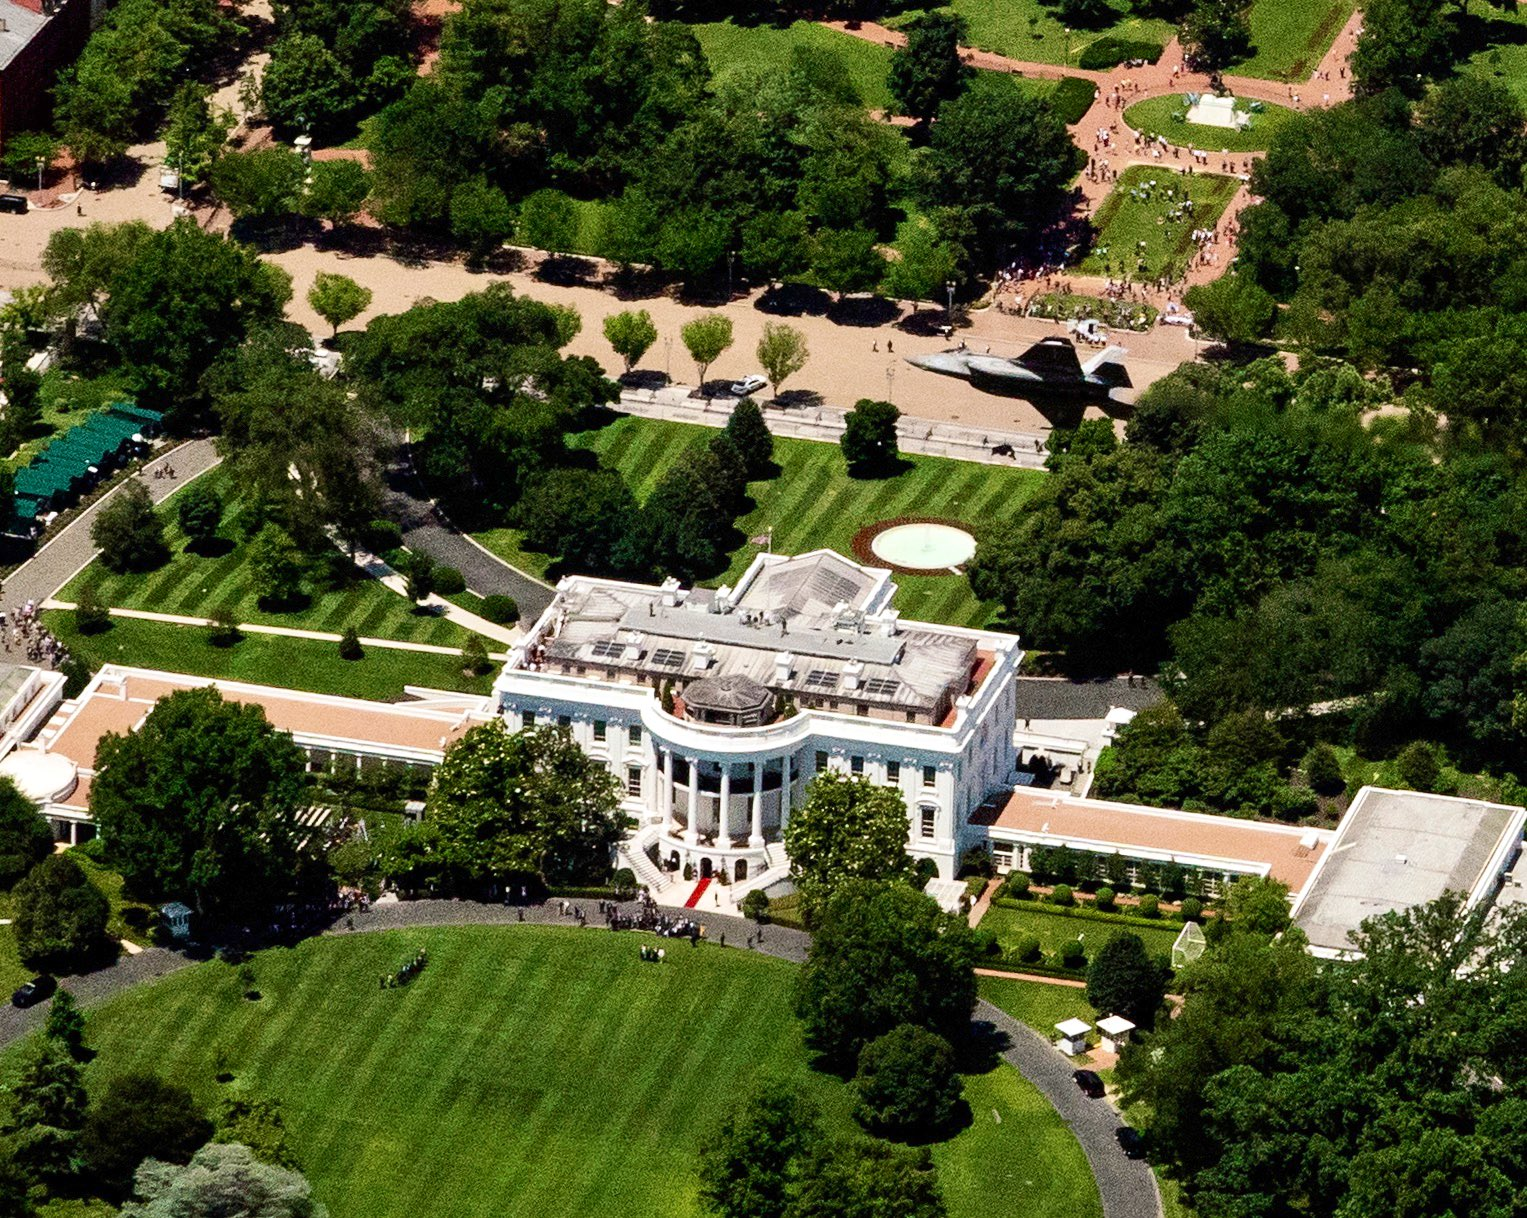 File:F-35 aircraft over the White House in June 2019.jpg ...